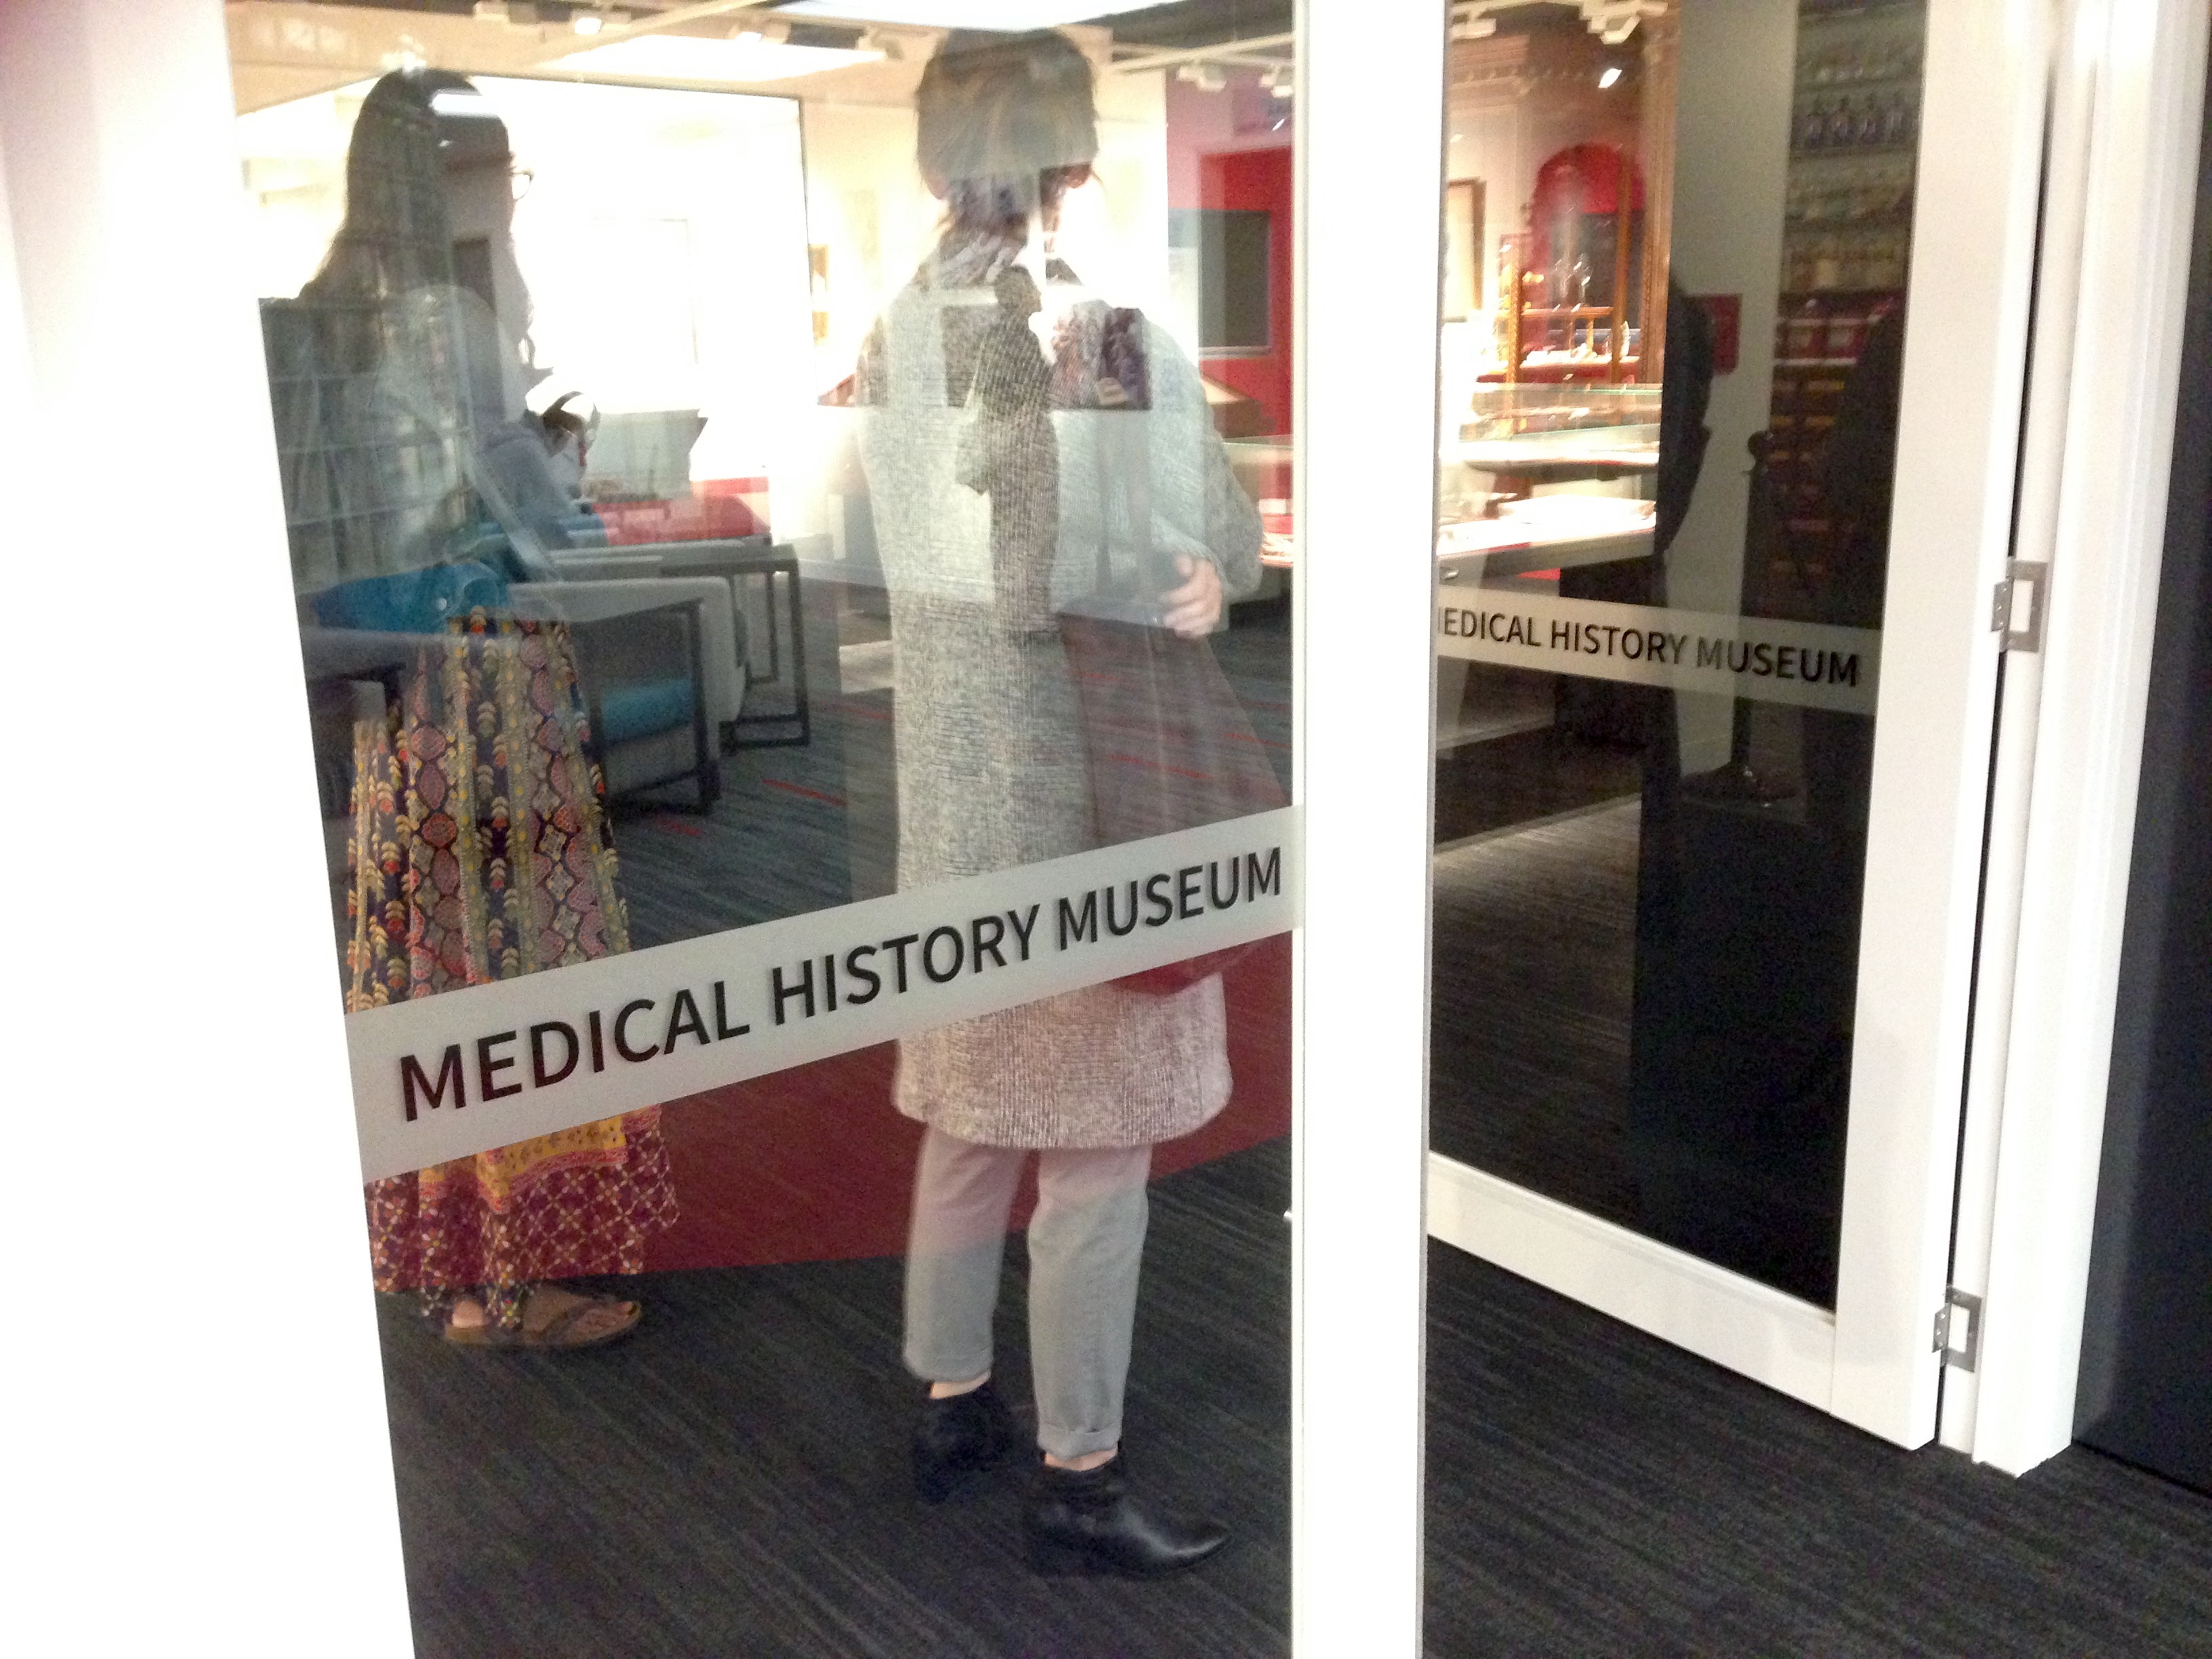 Melbourne Medical History Museum